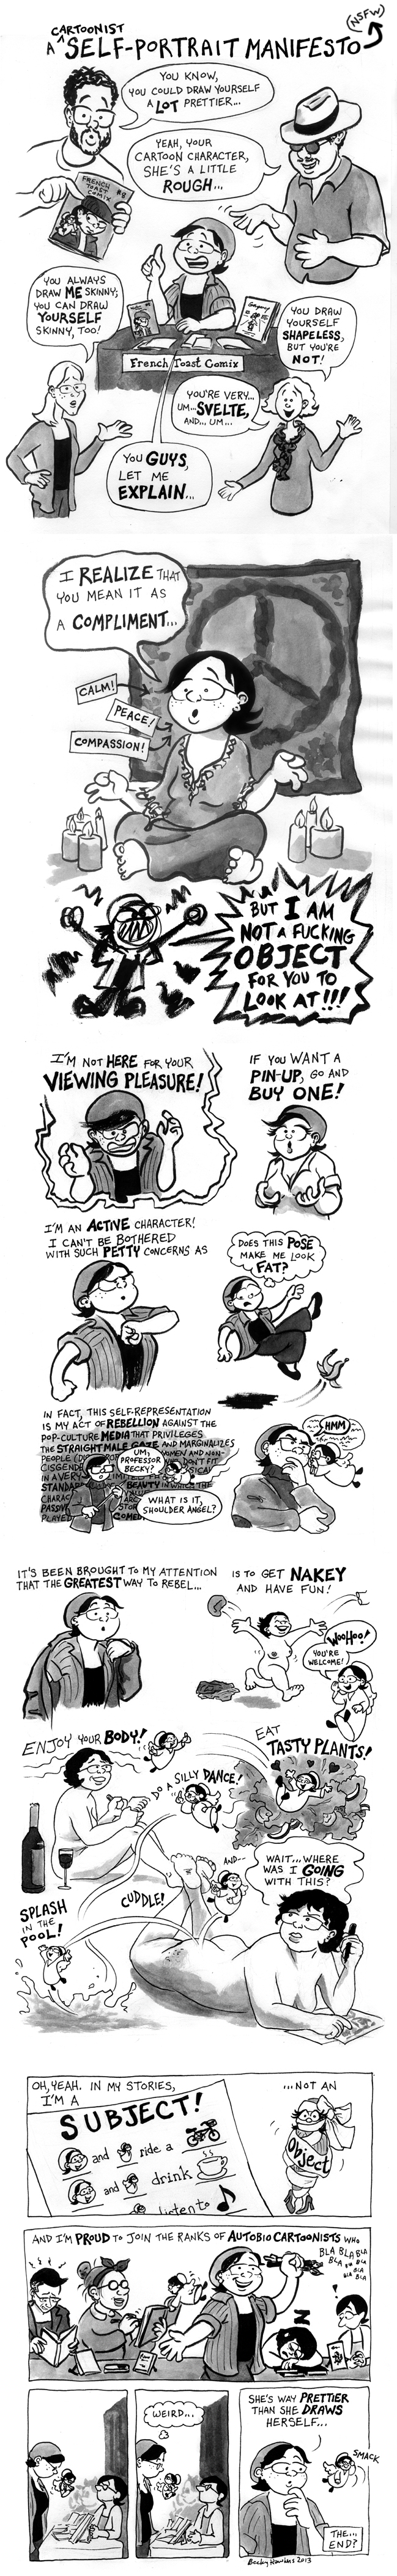 A Cartoonist Self-Portrait Manifesto